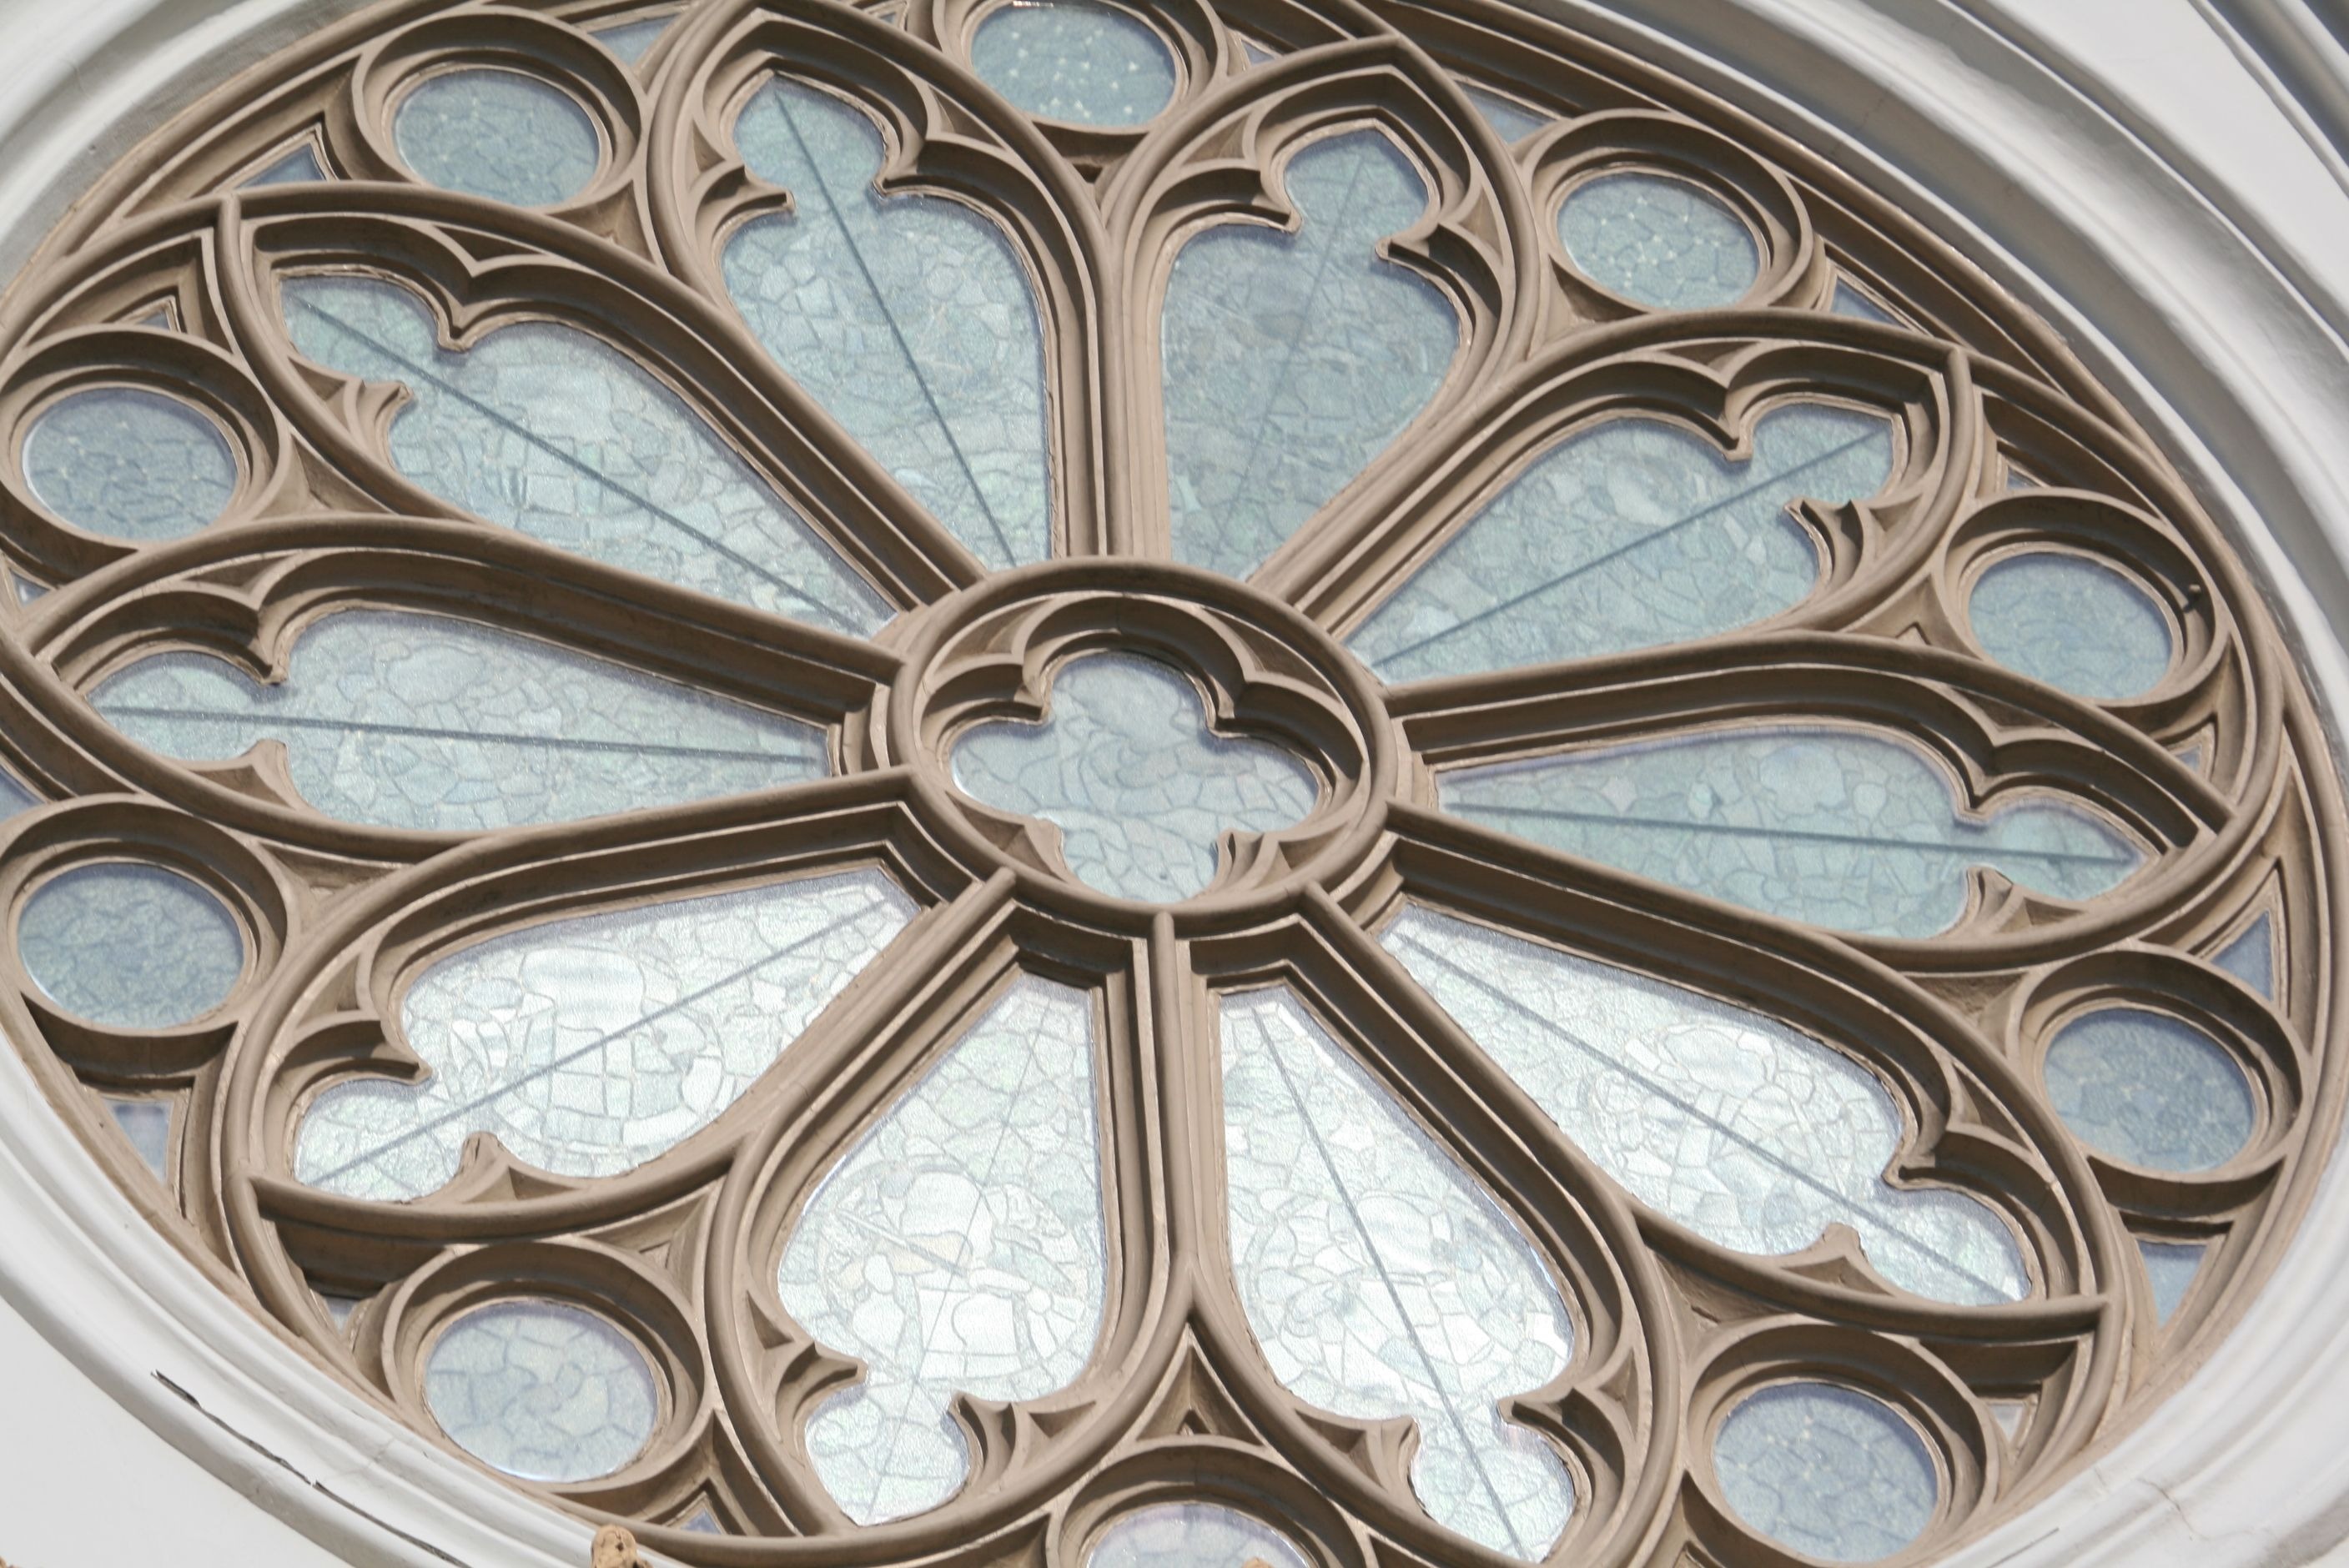 Gothic architecture rose window google search 4th for Rose window design